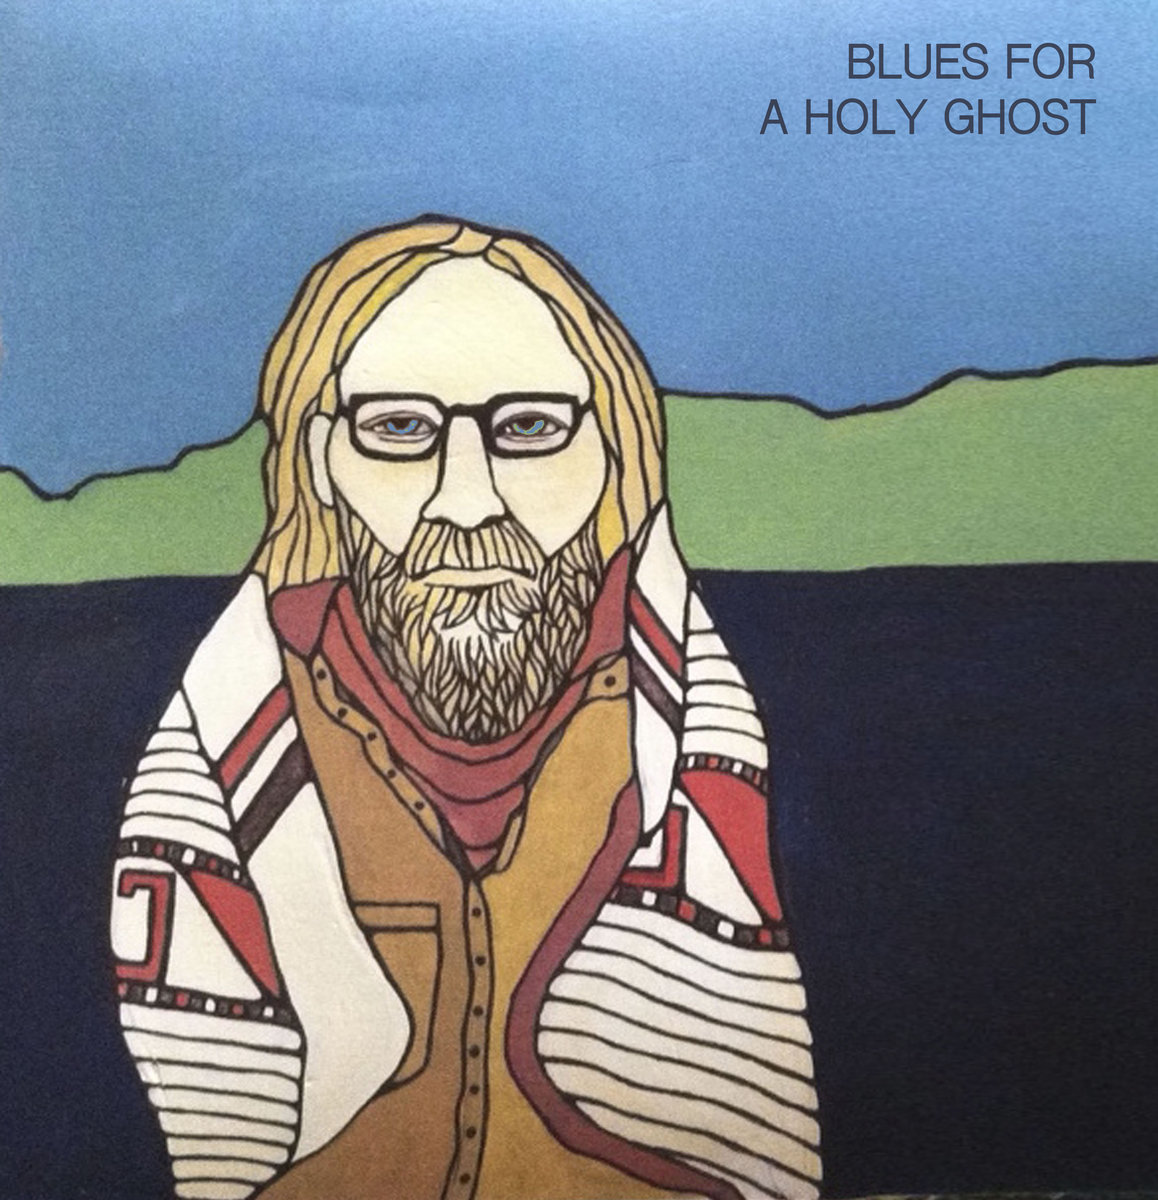 Blues For A Holy Ghost | The Reverend John DeLore